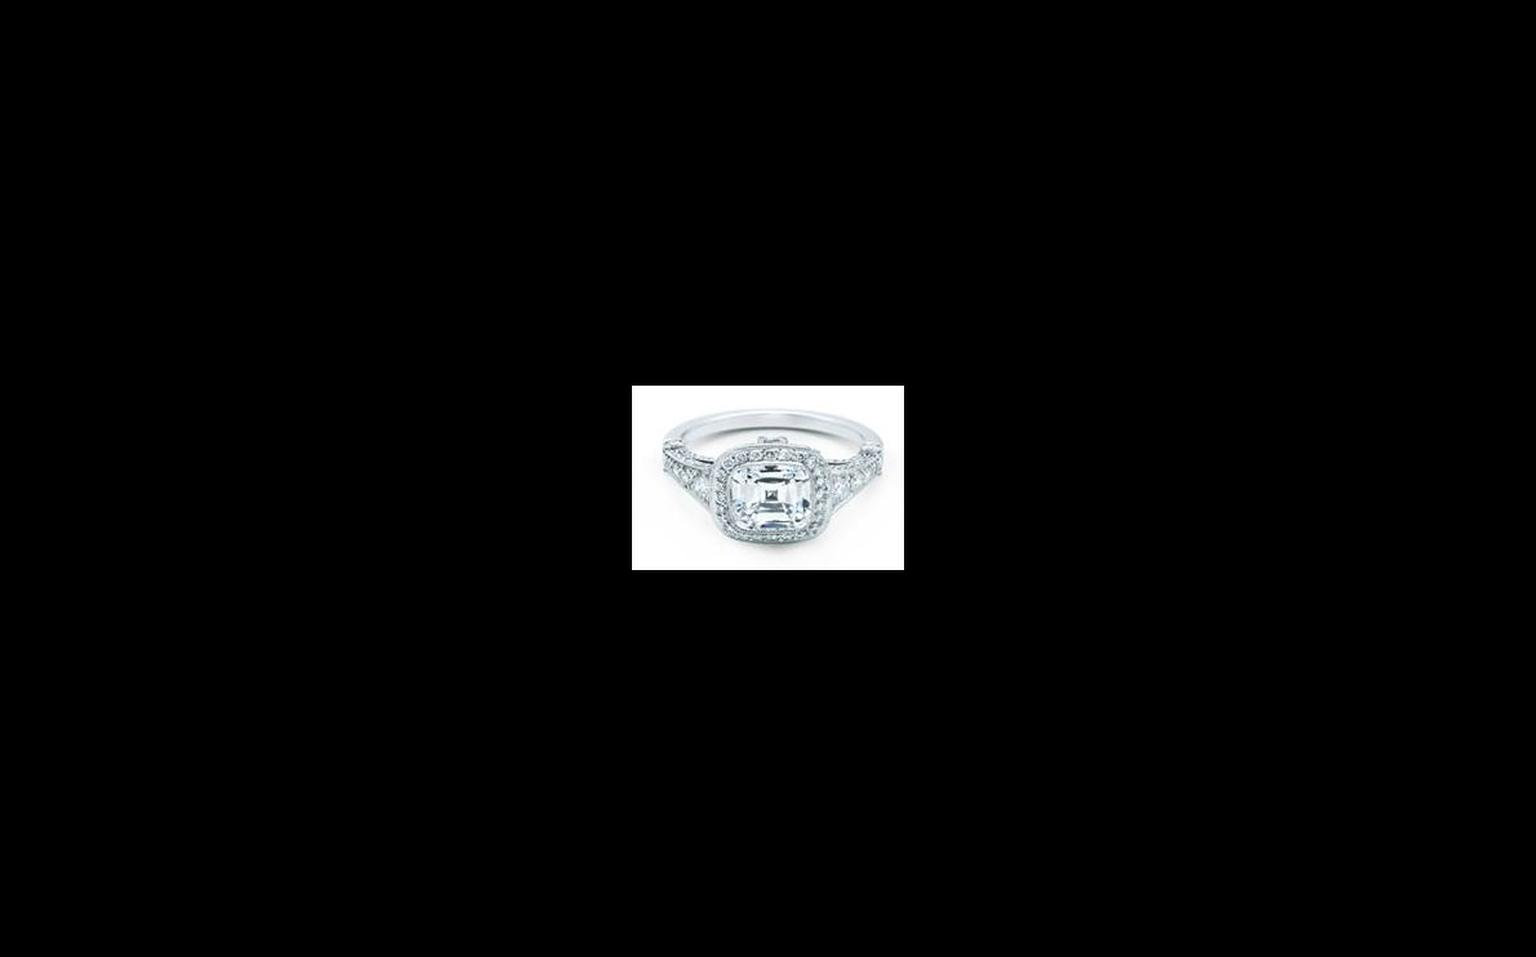 Tiffany Legacy diamond ring with 5.13 carats diamond as worn by Anne Hathaway at the Oscars. The ring is worth US$285,000.